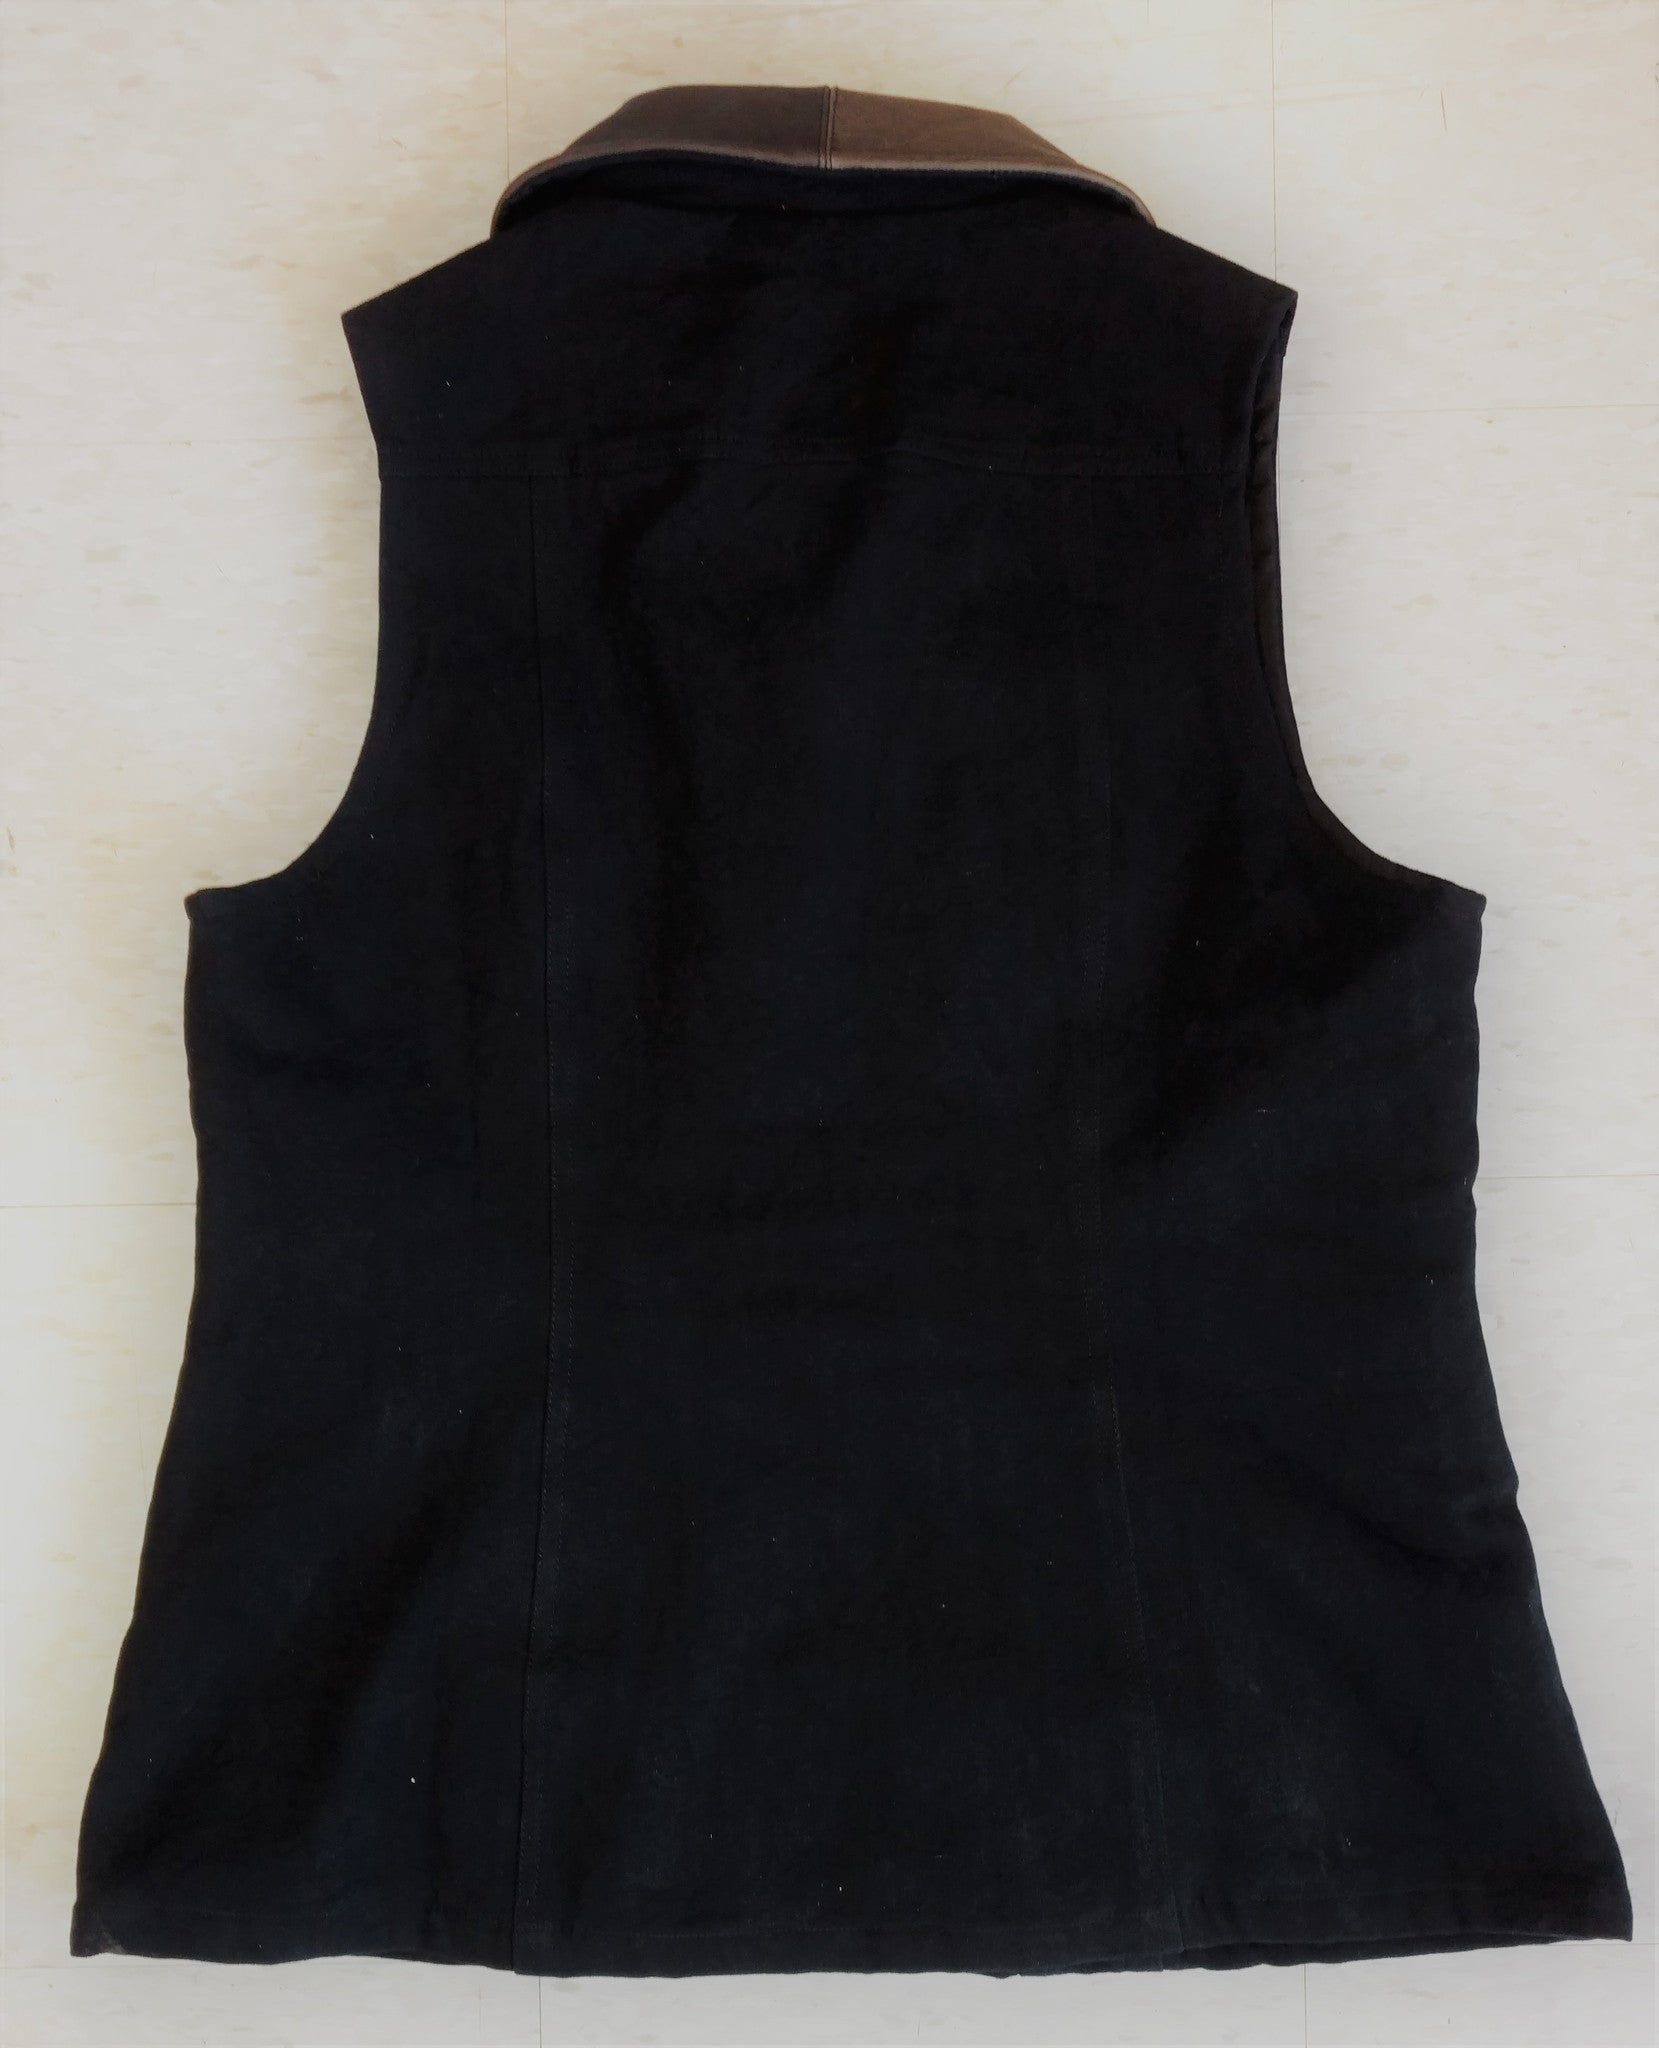 WOMEN'S THELMA VEST, Black